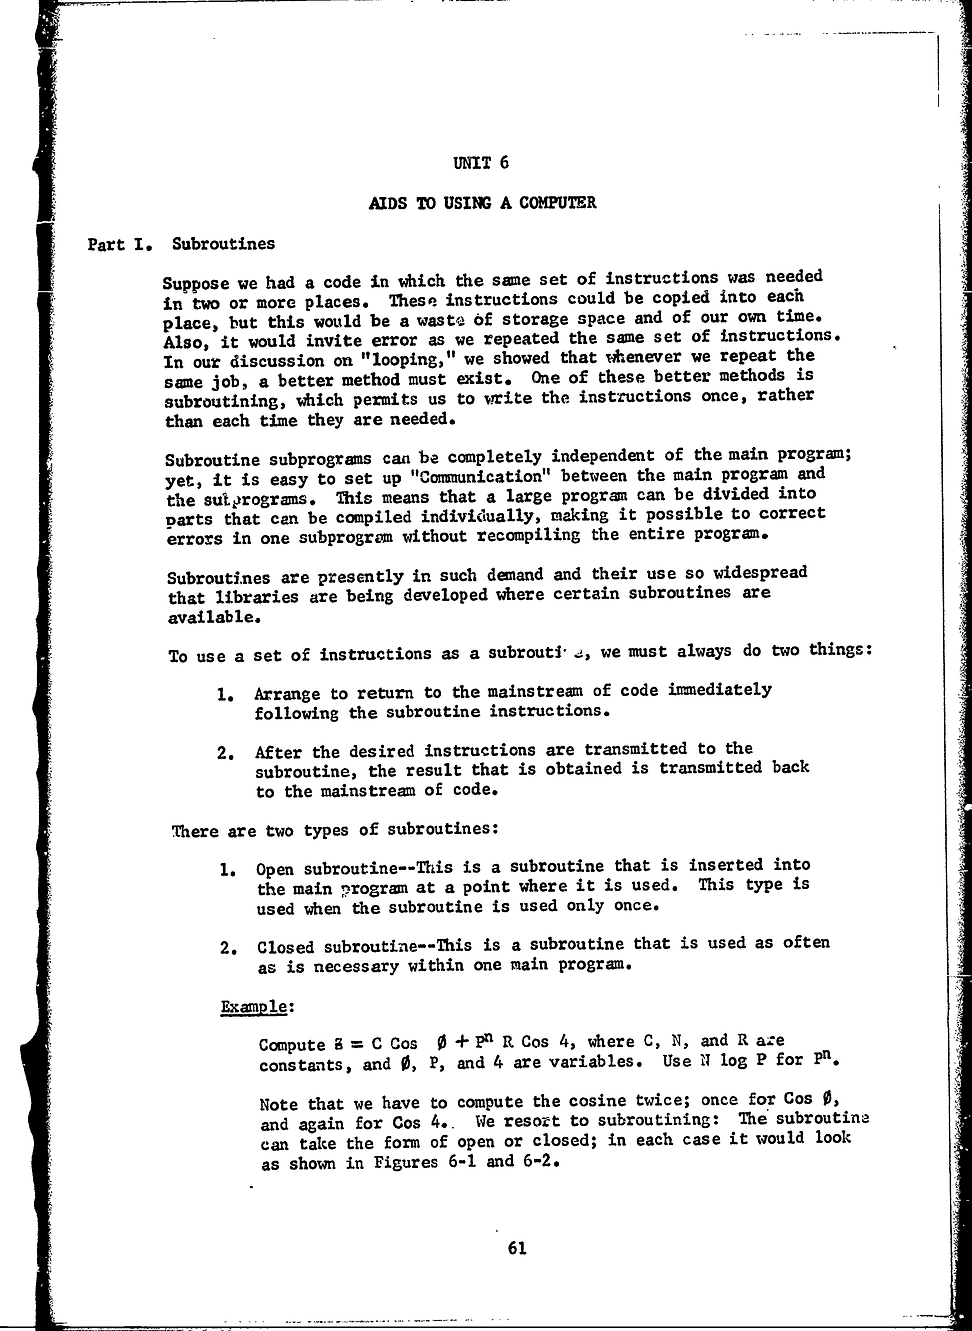 WYLE Instruction_Page_069_Image_0001.tif